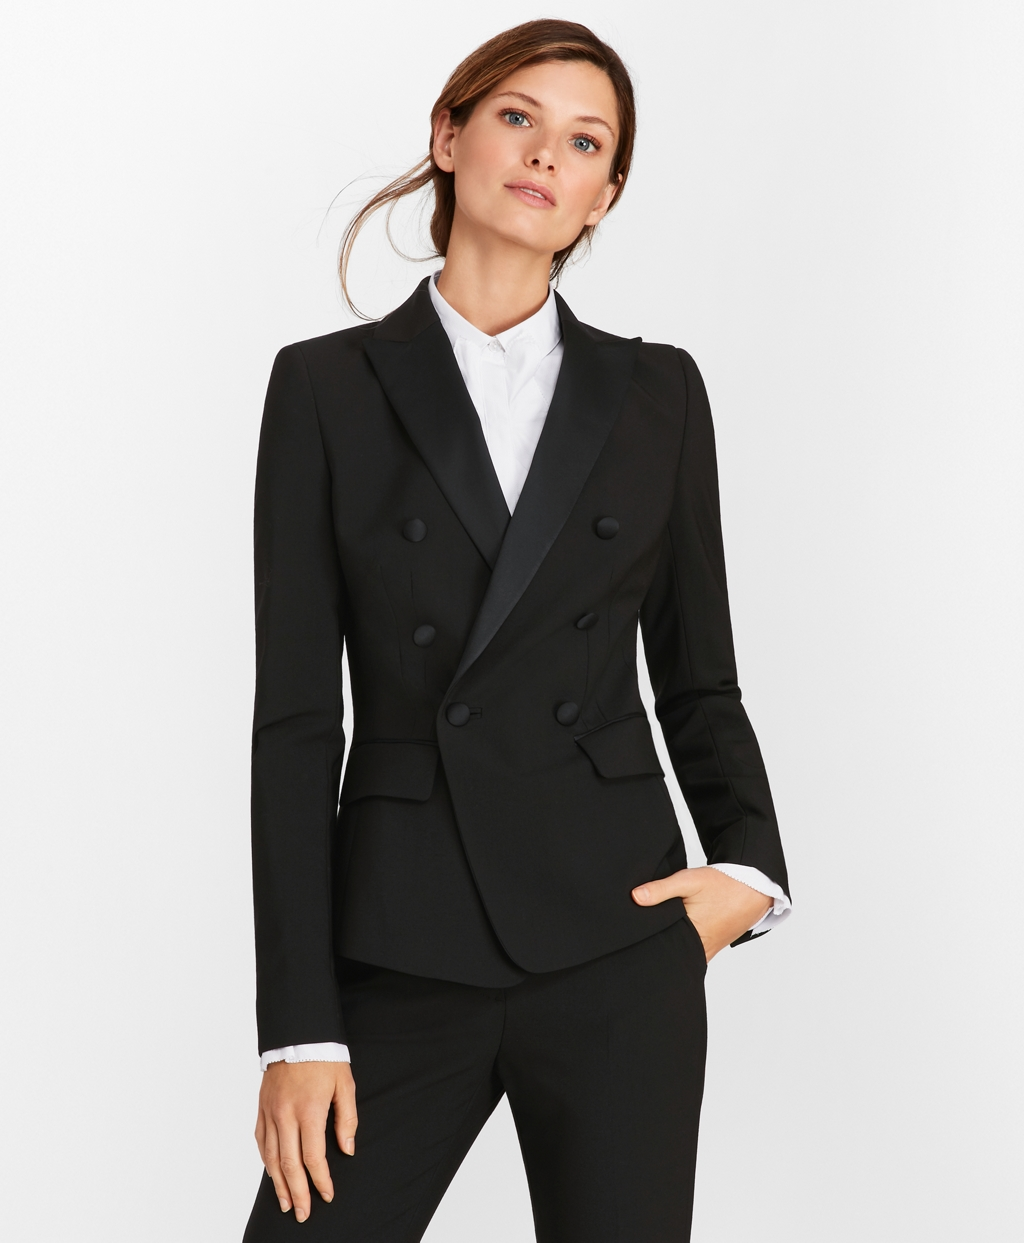 Vintage Evening Dresses and Formal Evening Gowns Brooks Brothers Womens Petite Stretch-Wool Crepe Double-Breasted Tuxedo Jacket $498.00 AT vintagedancer.com